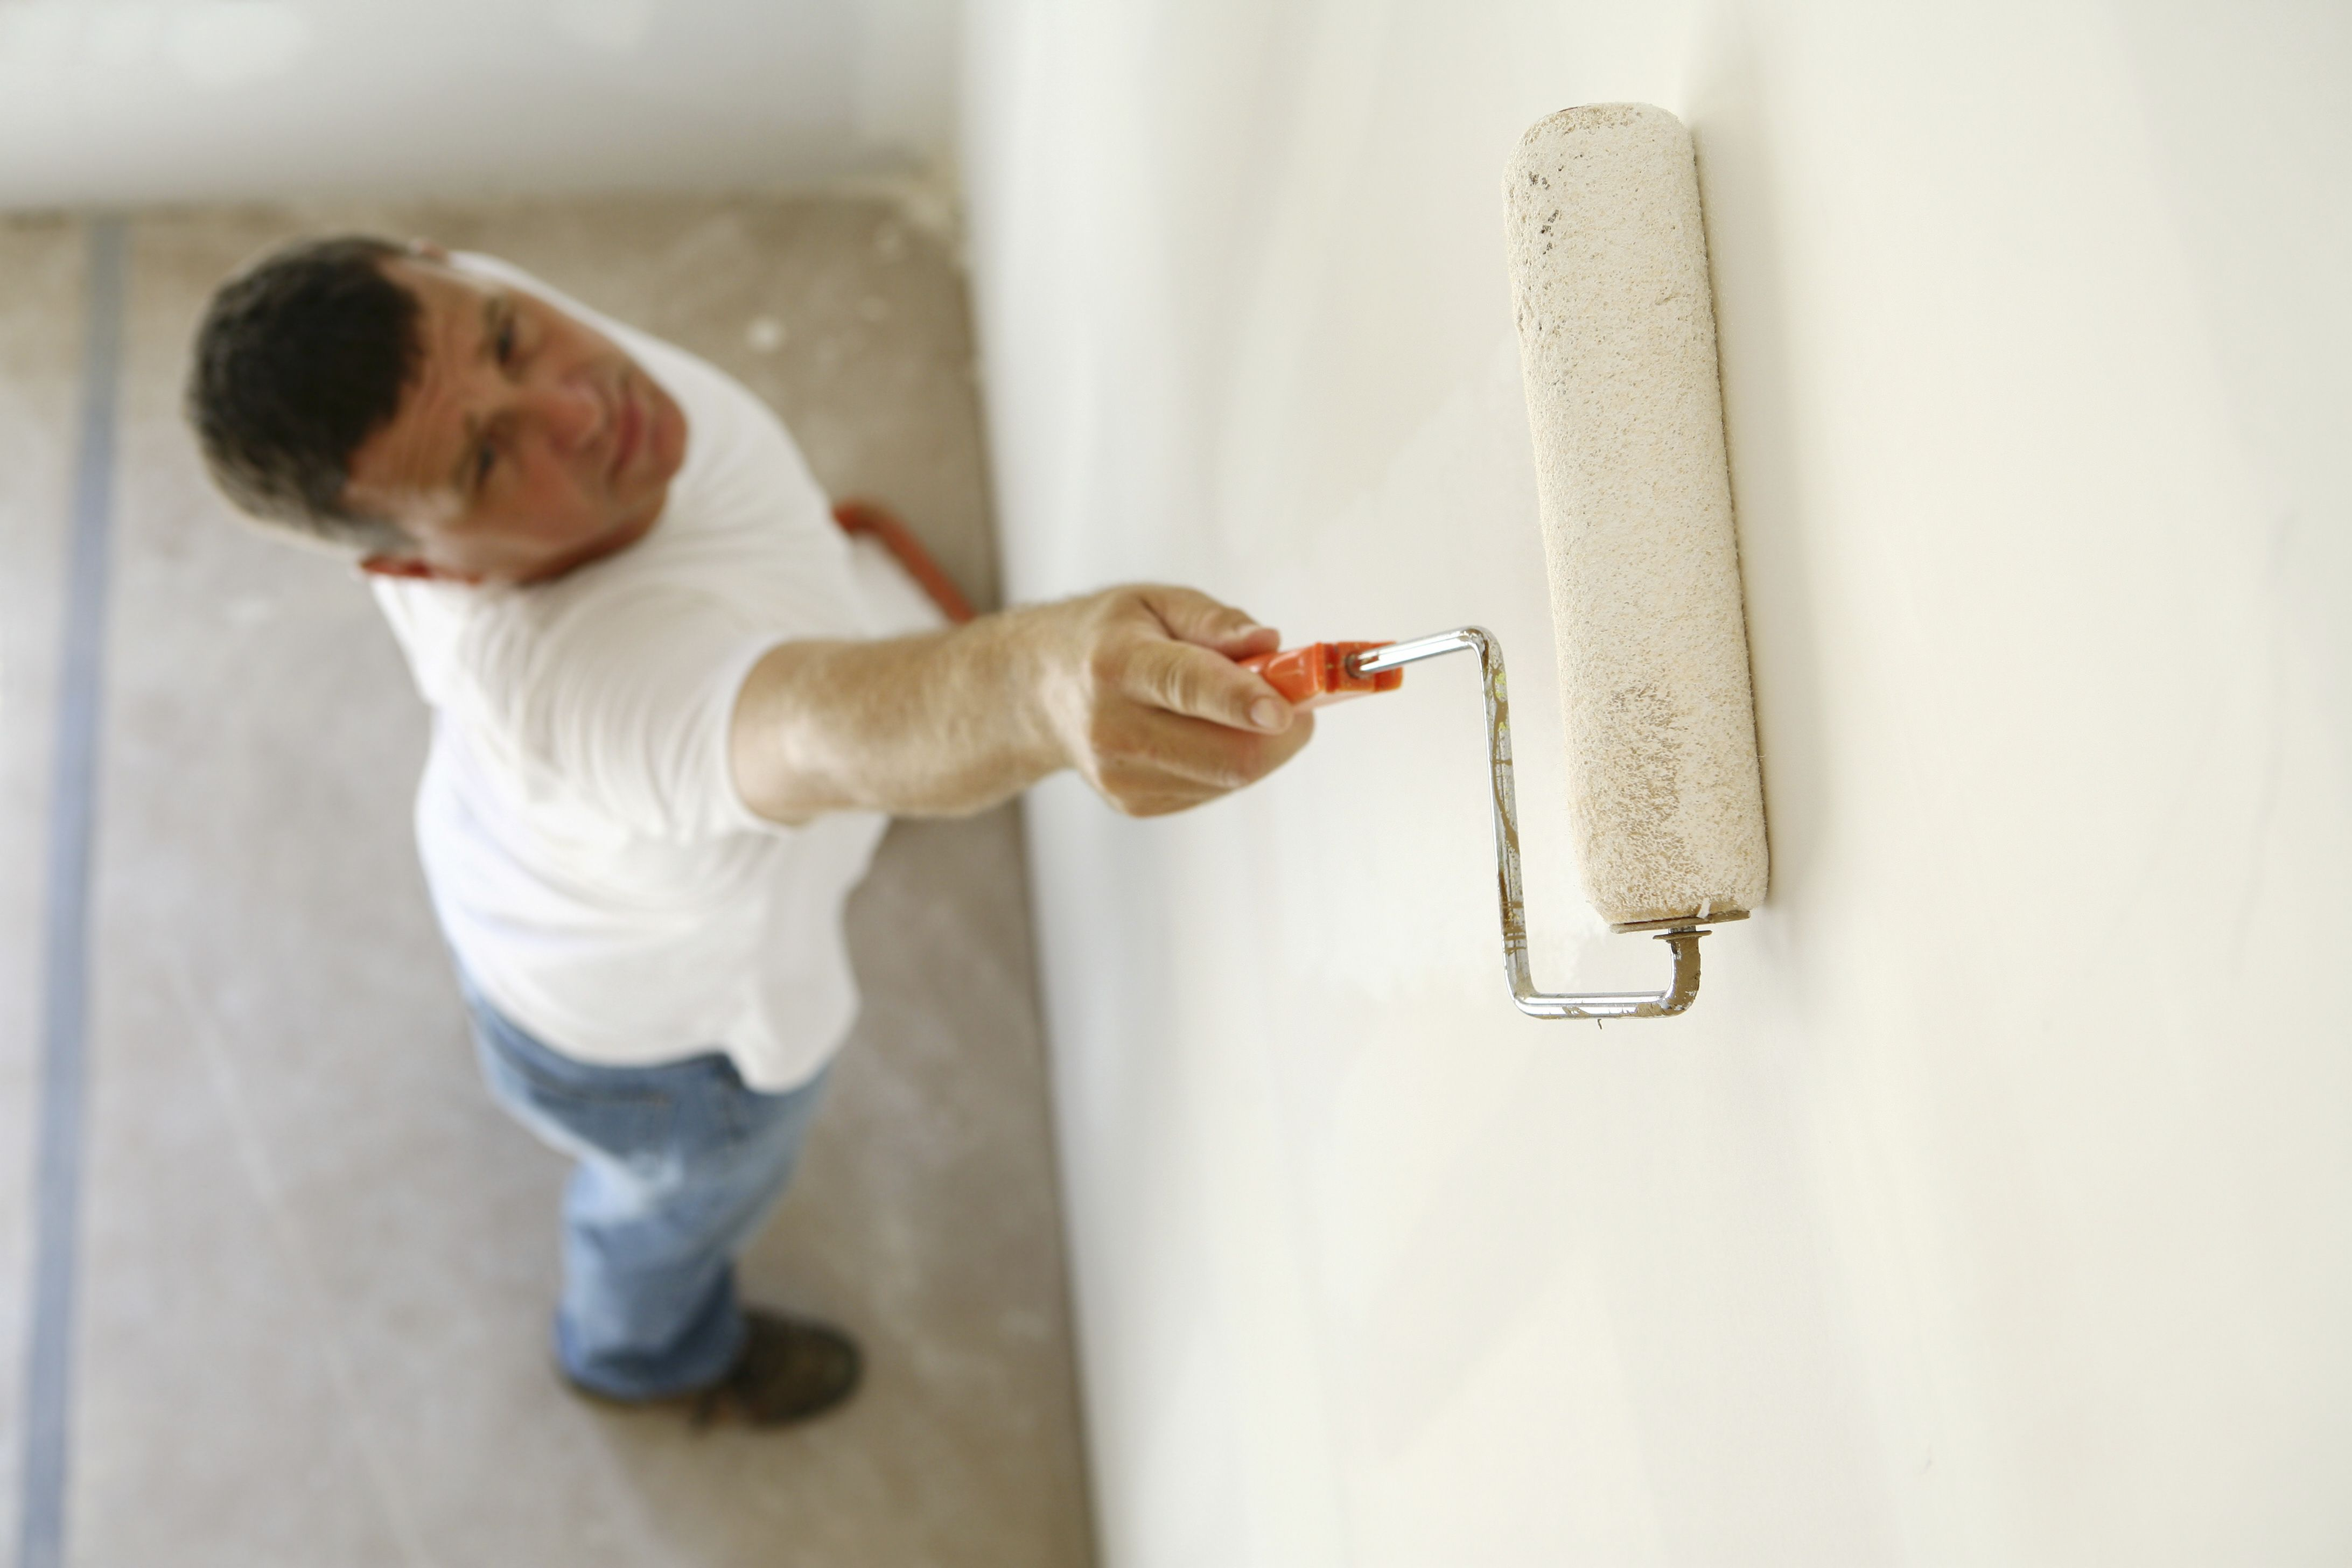 Drywall primer 5 best types to use Priming walls before painting